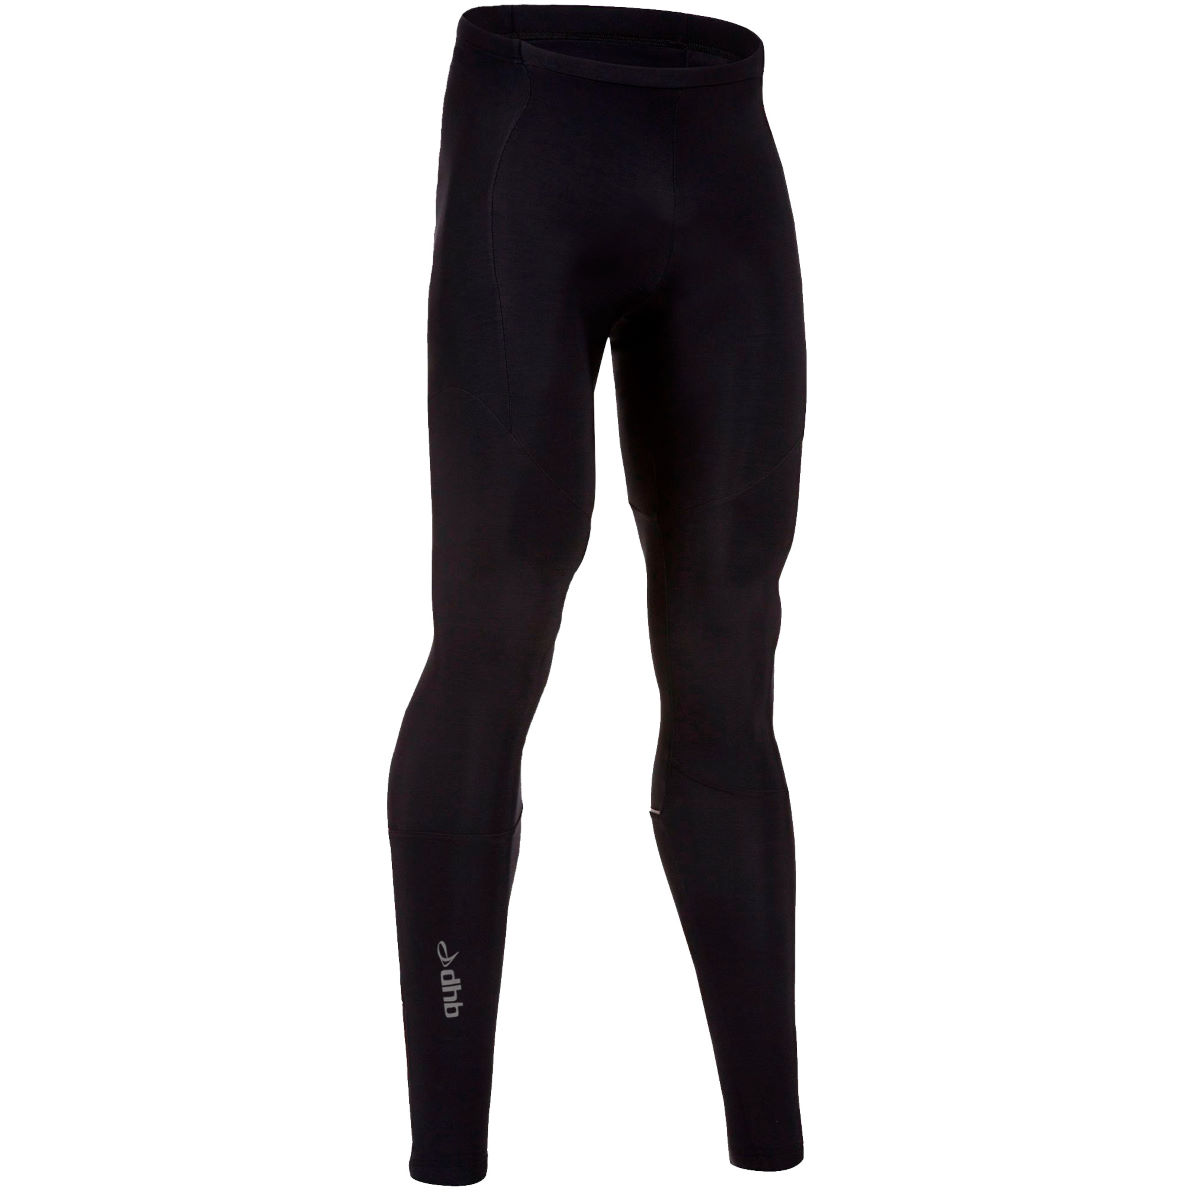 dhb Vaeon Roubaix Padded Waist Tight